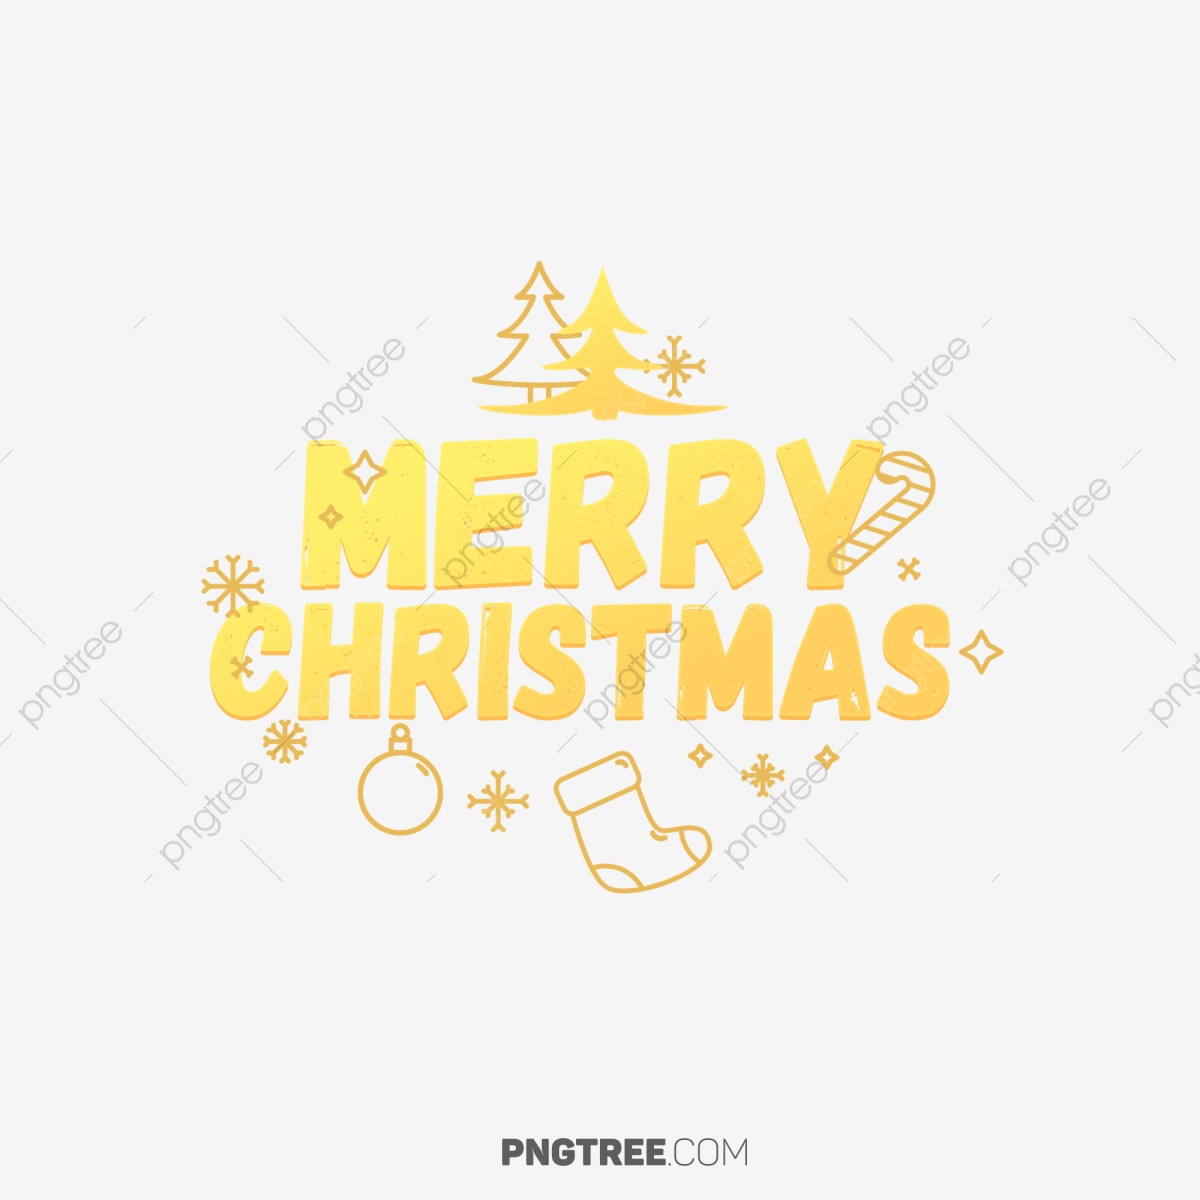 Merry Christmas Banner Transparent Design, Christmas, Eve.